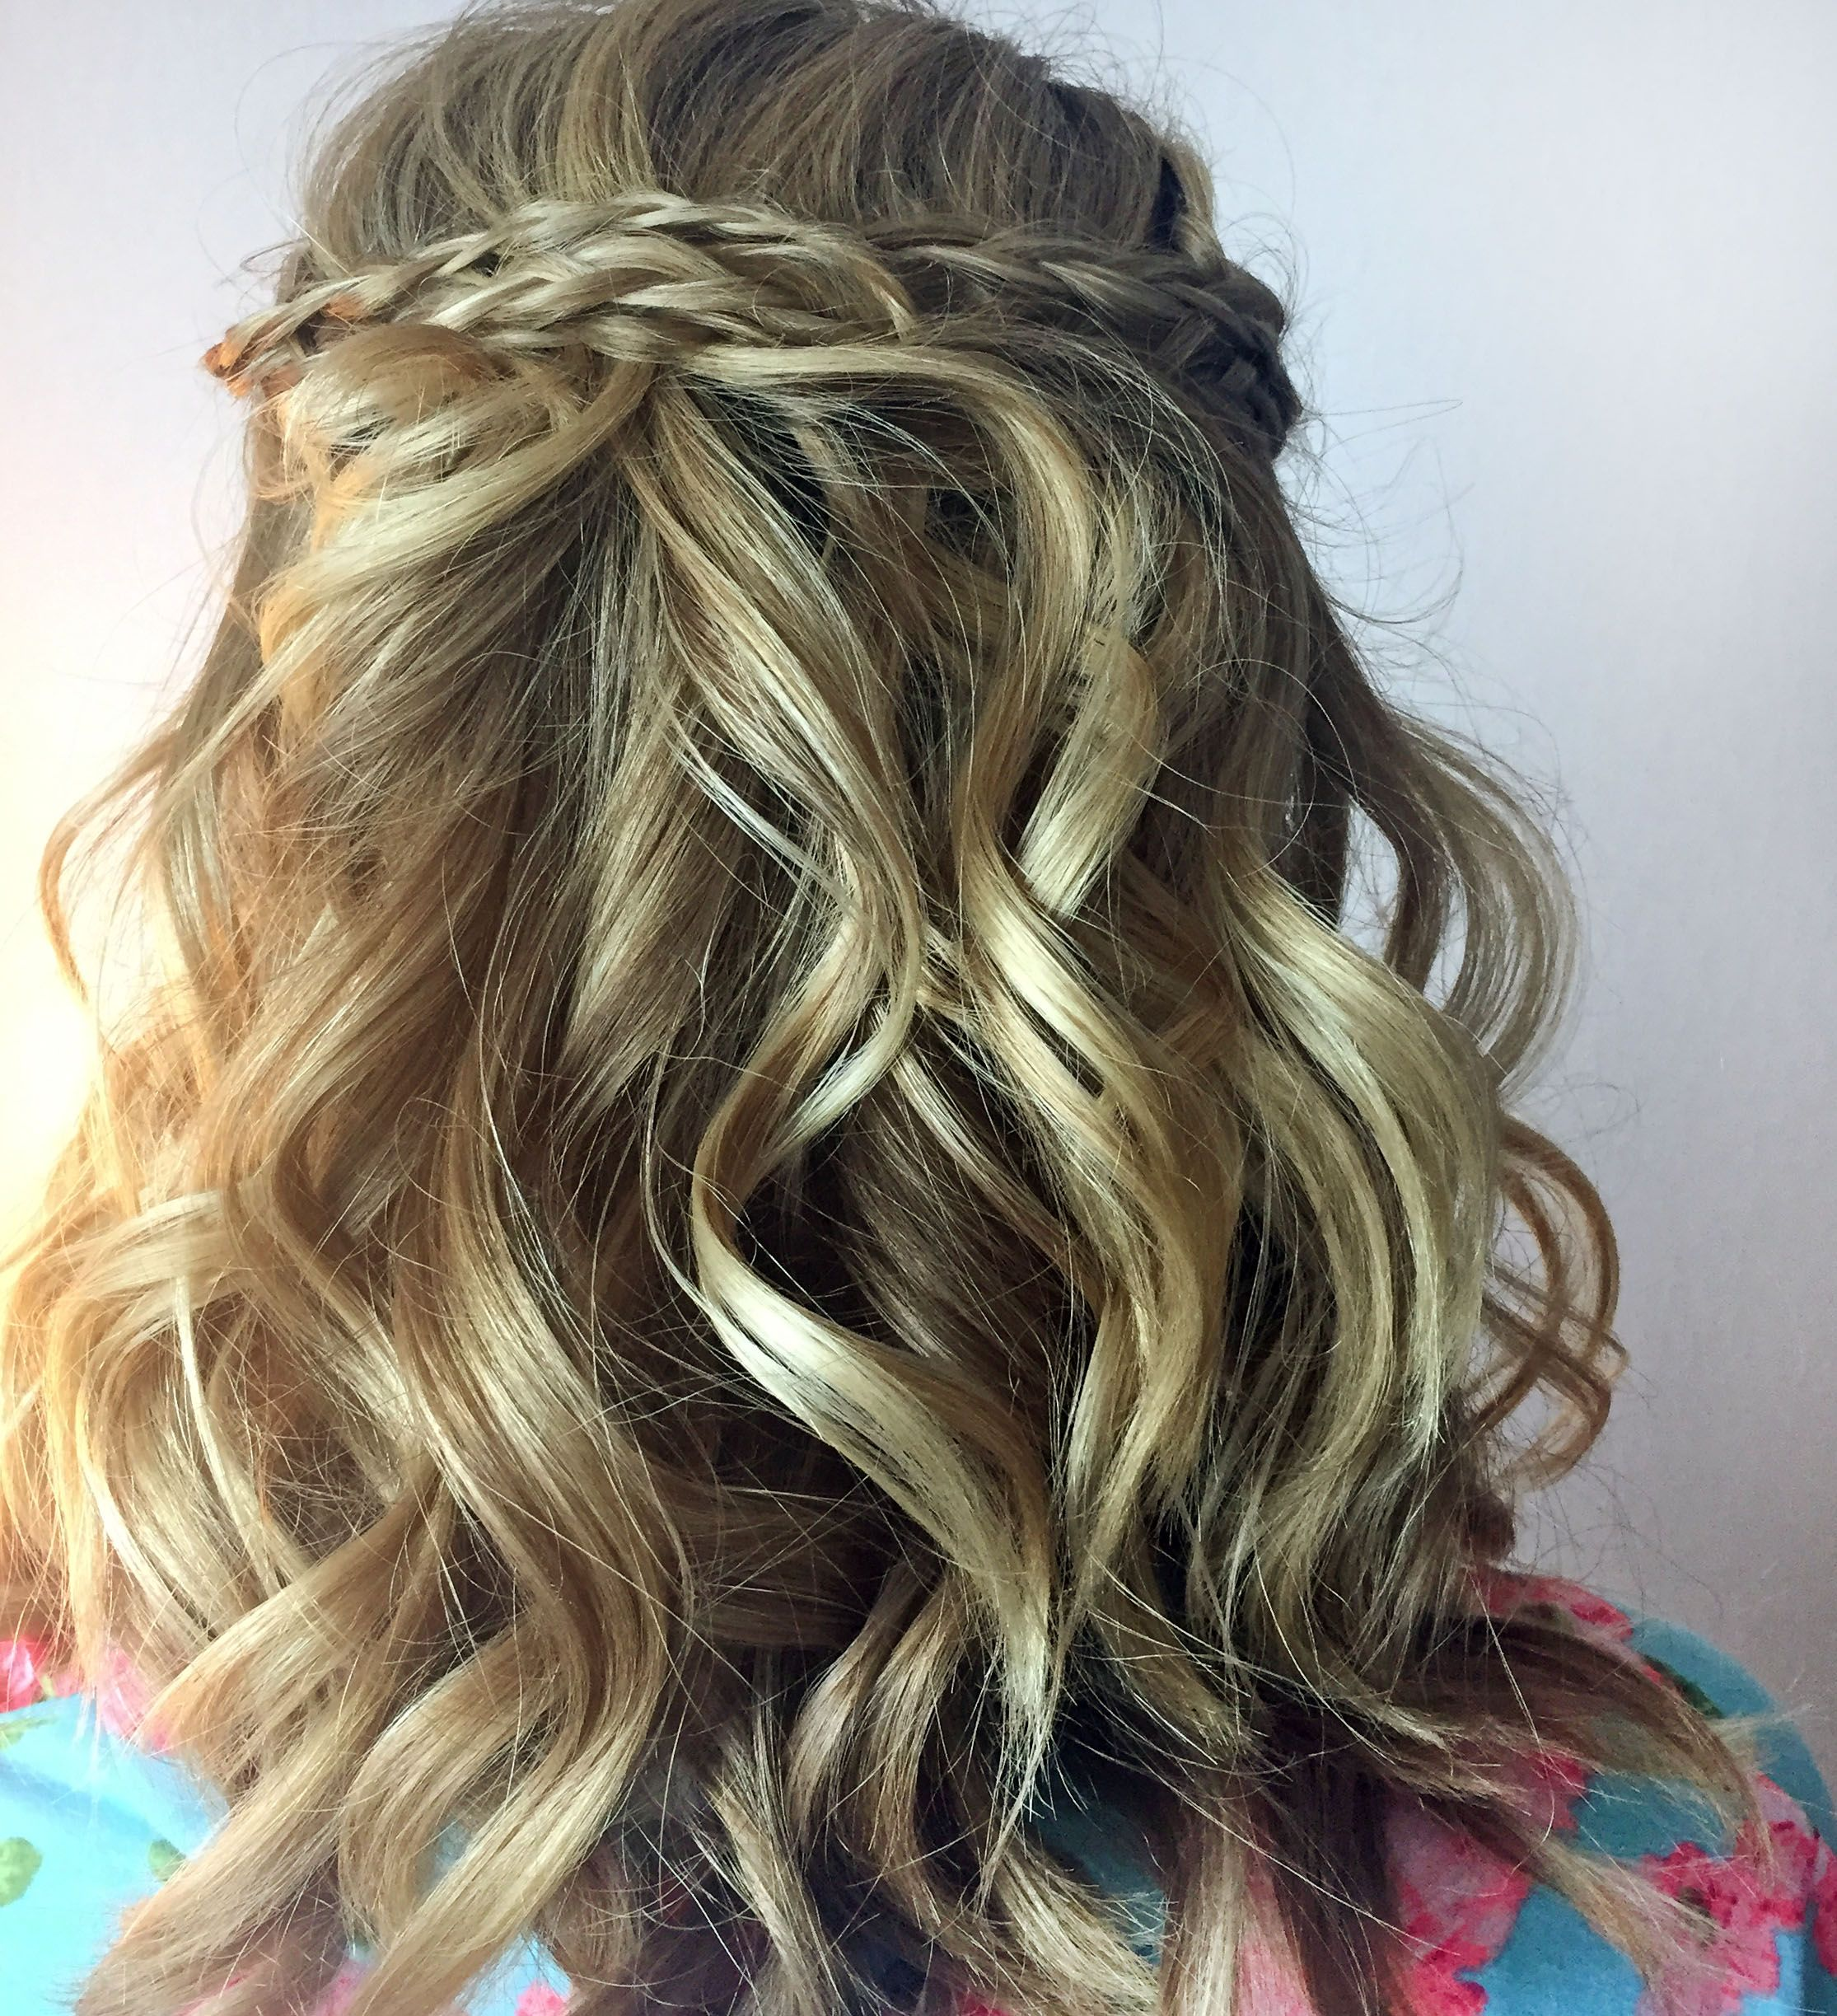 Braided and curled bridal hair style by Melissa